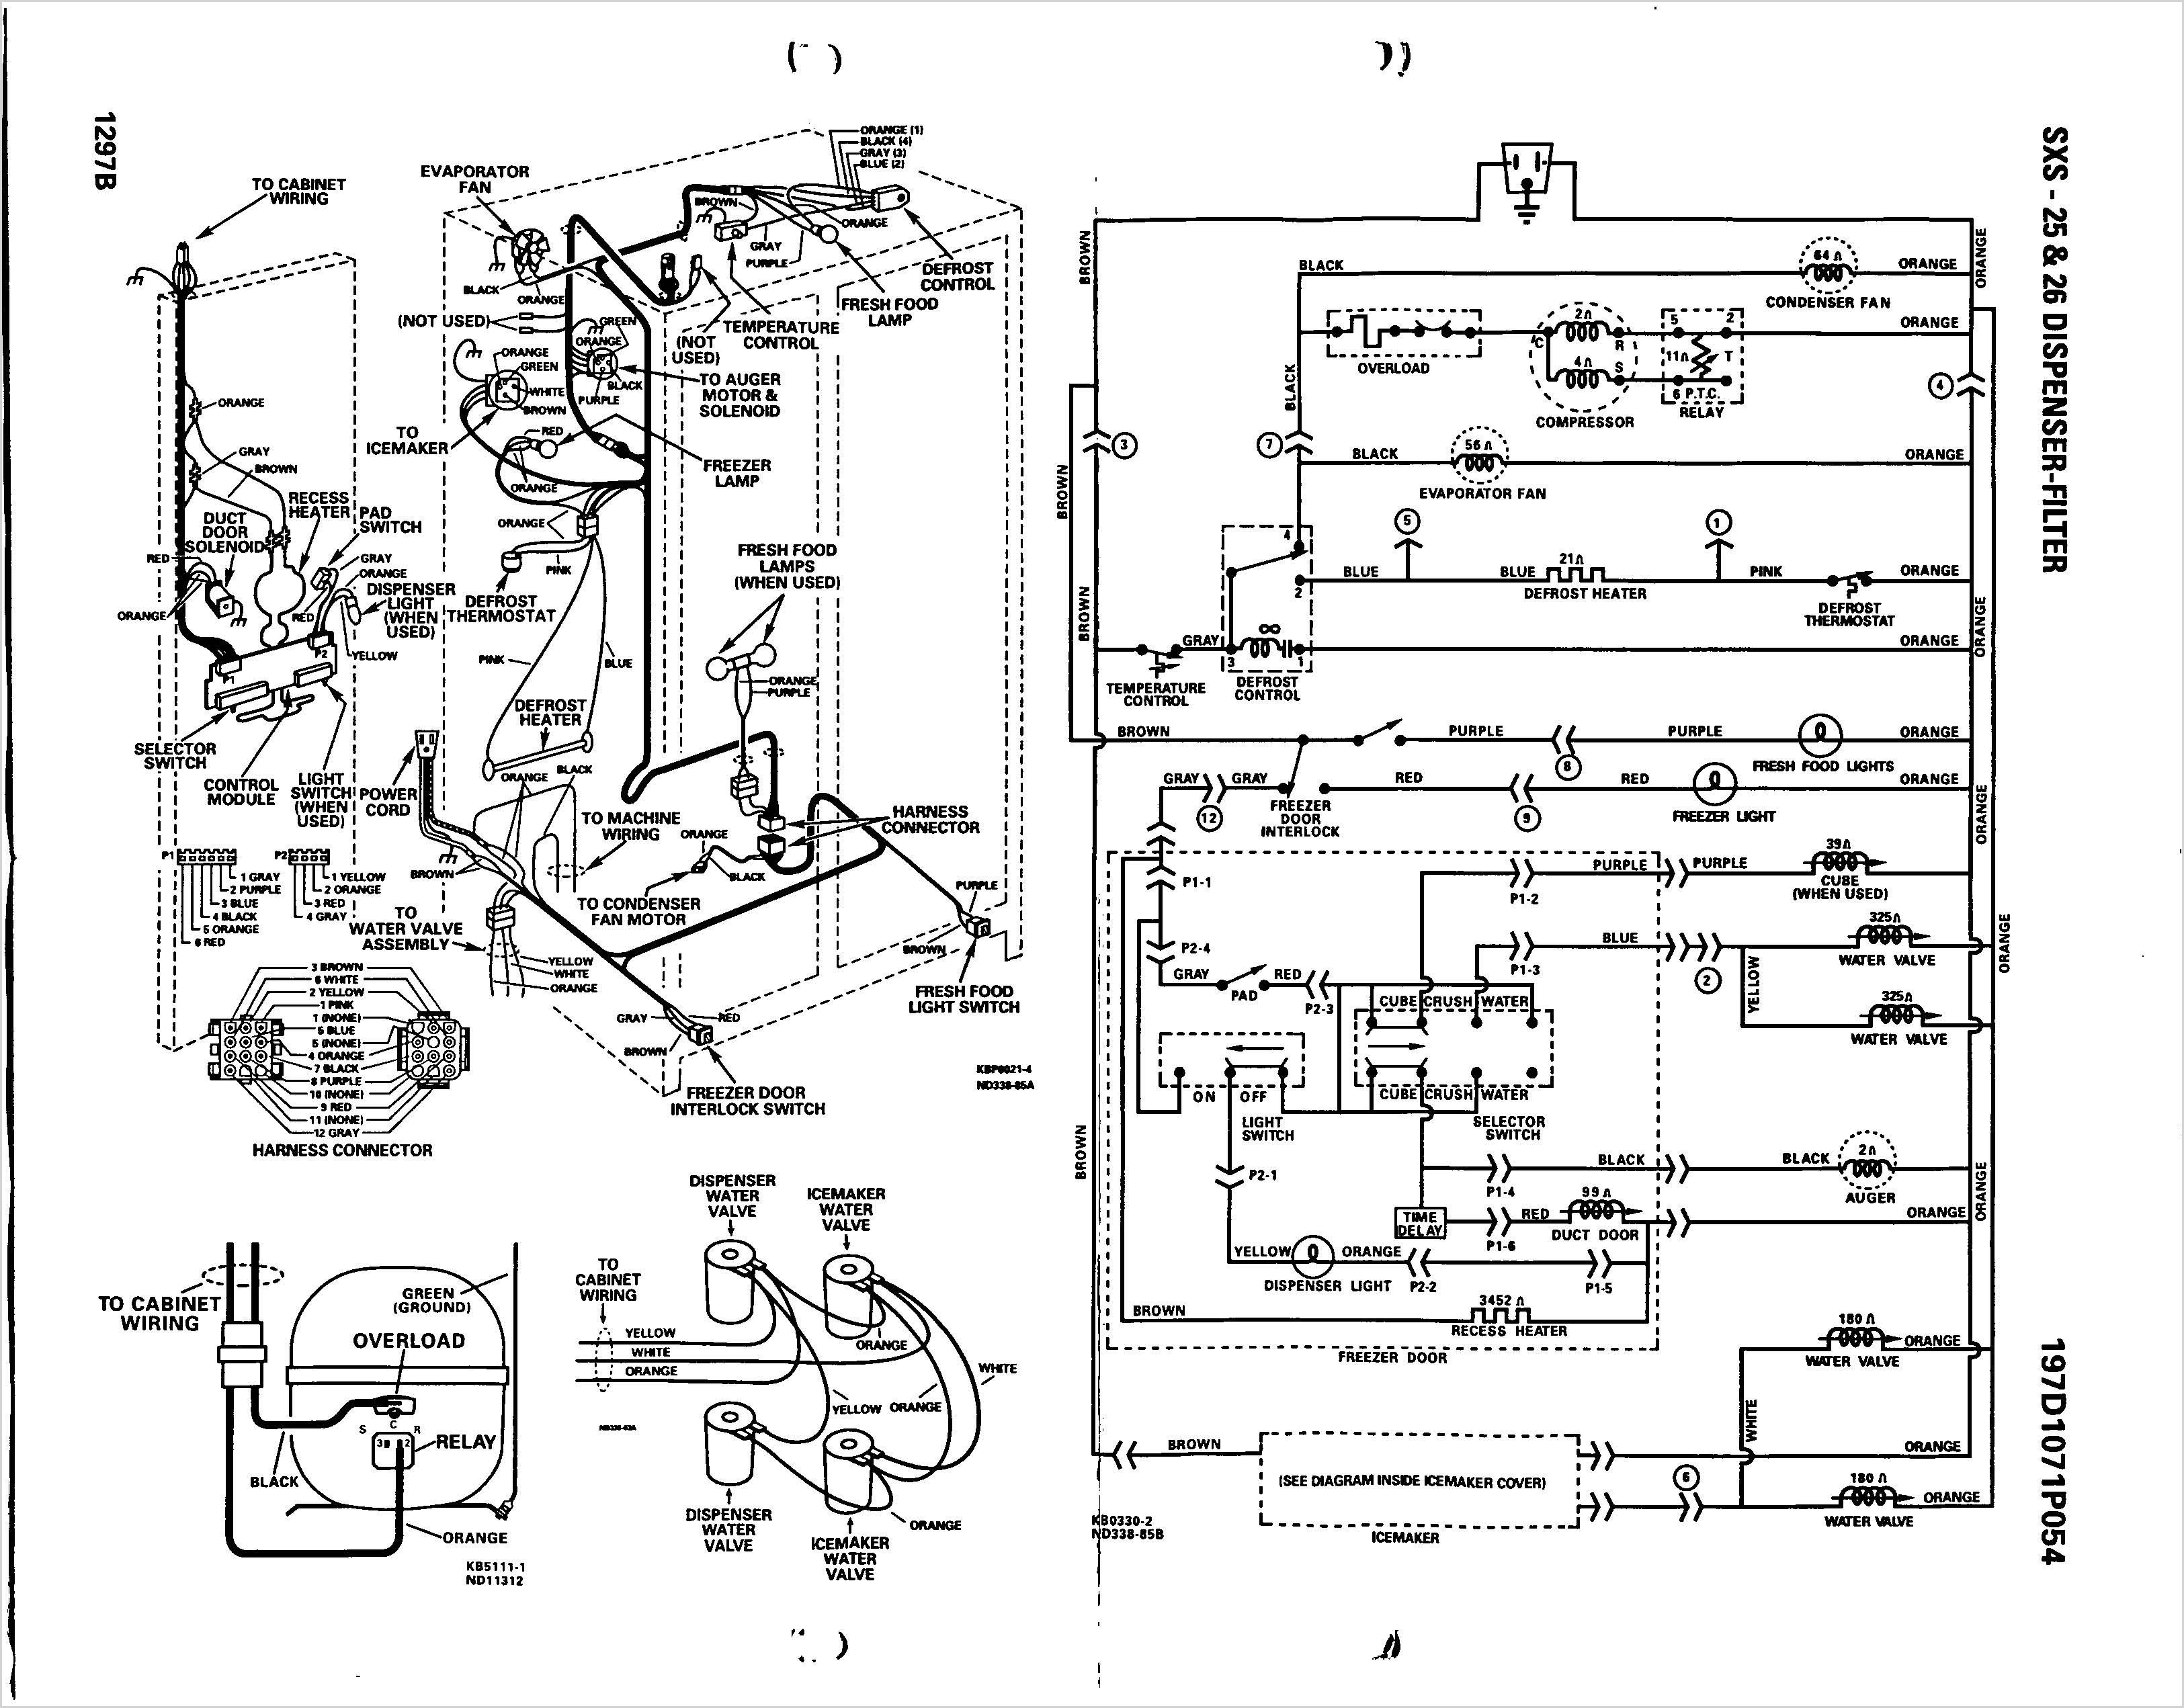 kitchenaid dishwasher wiring diagram luxury refrigerator wiring diagram pressor b2network of kitchenaid dishwasher wiring diagram kitchenaid wiring diagrams wiring diagram